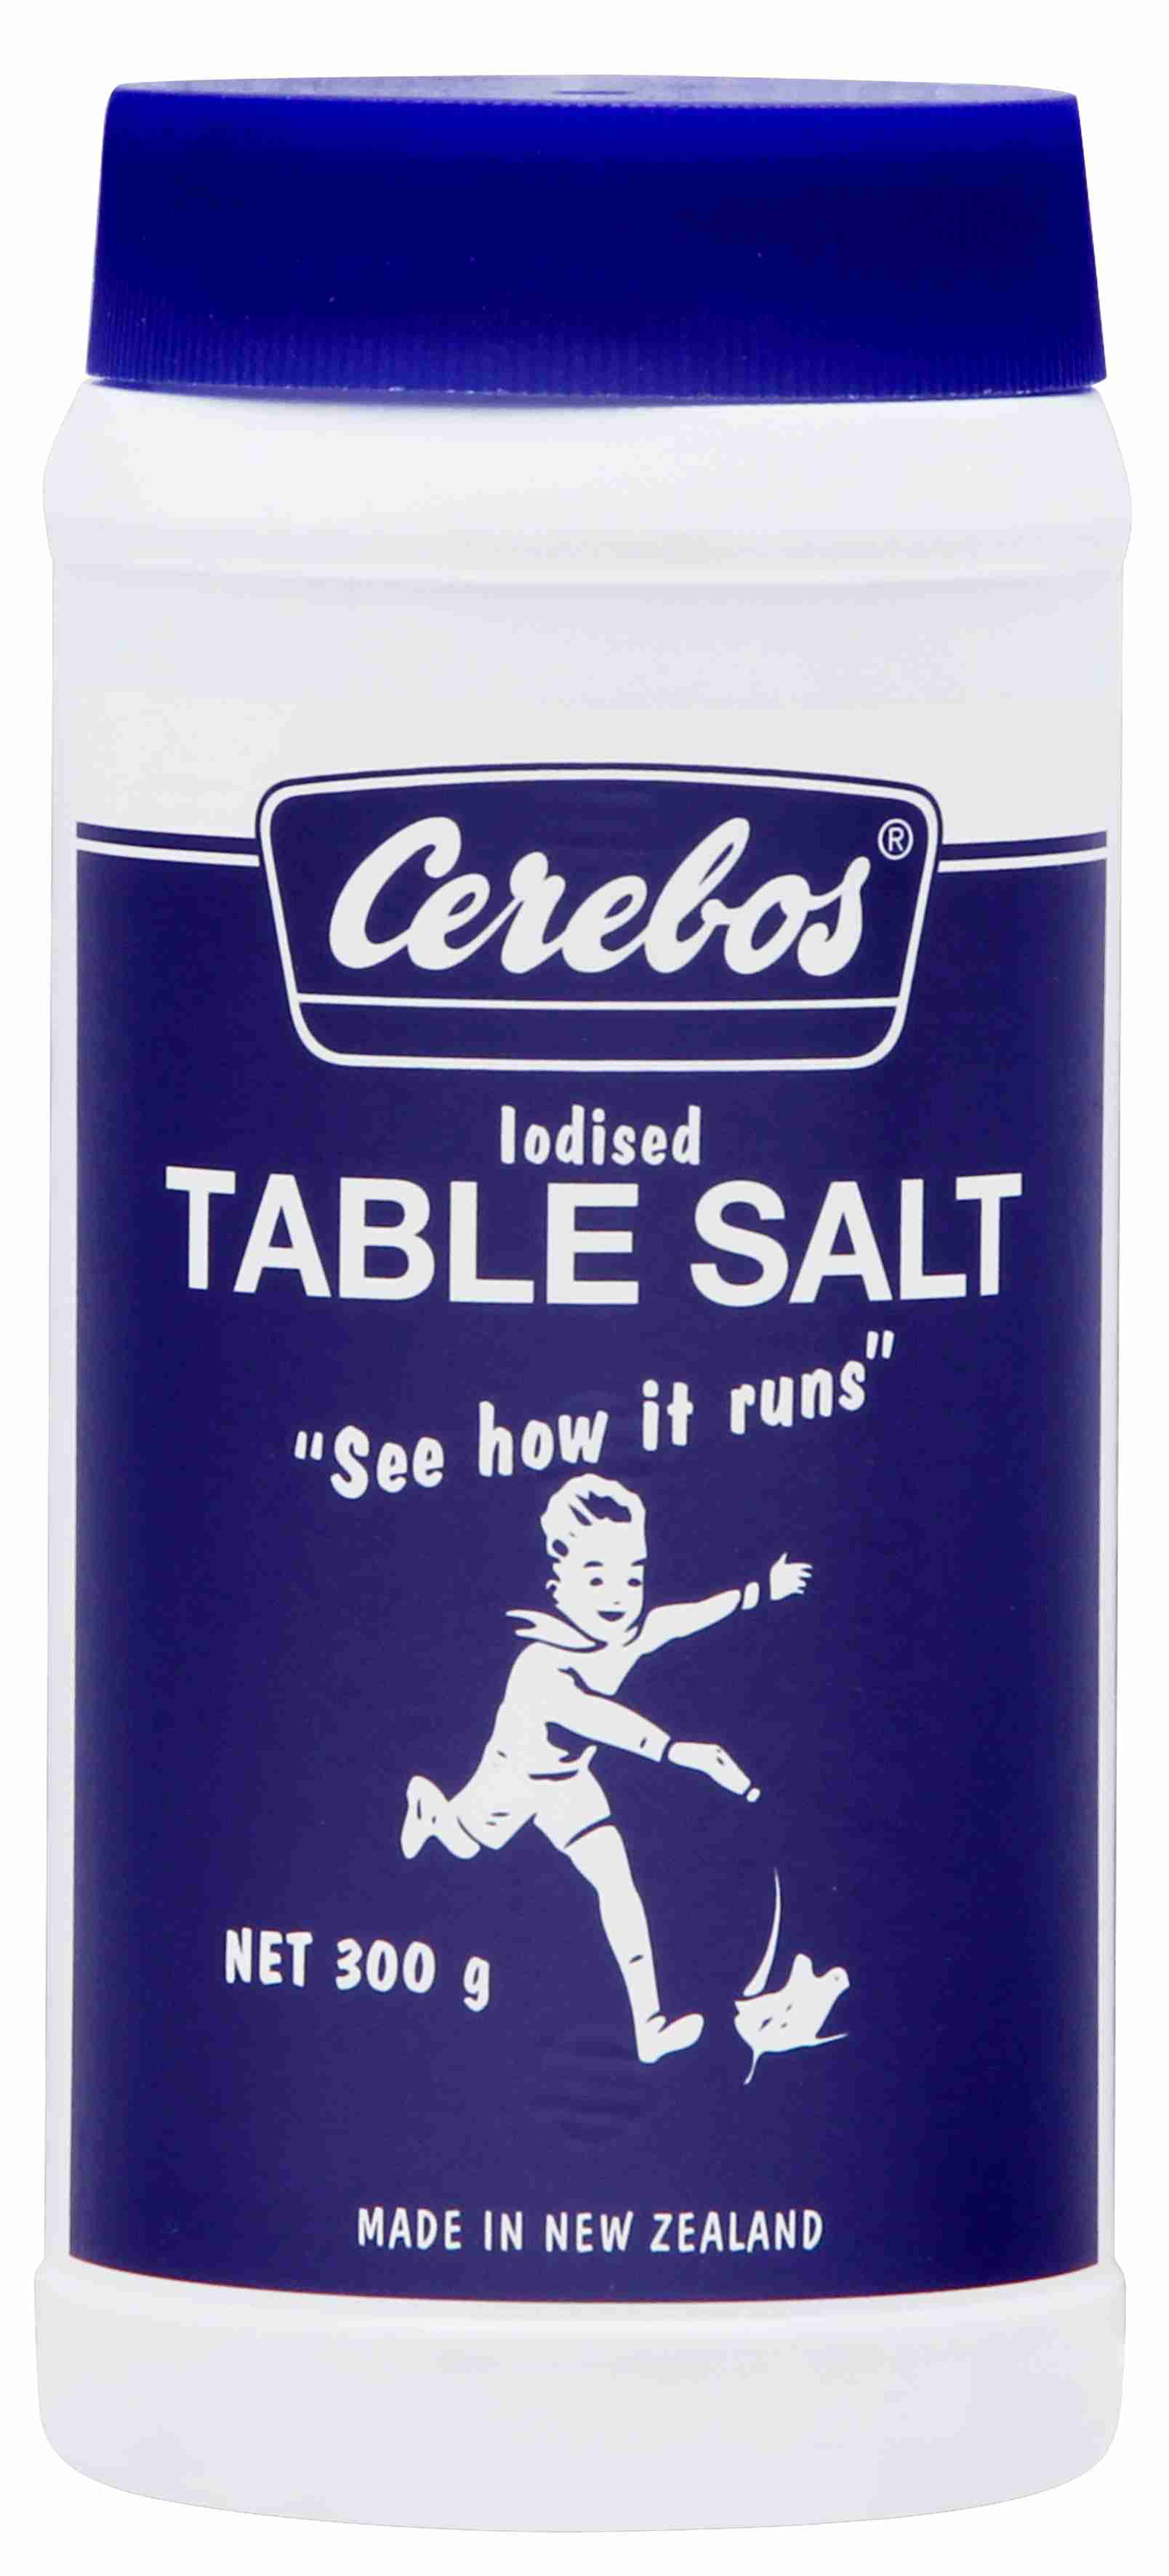 300g Cerebos Iodised Table Salt 24 pack image